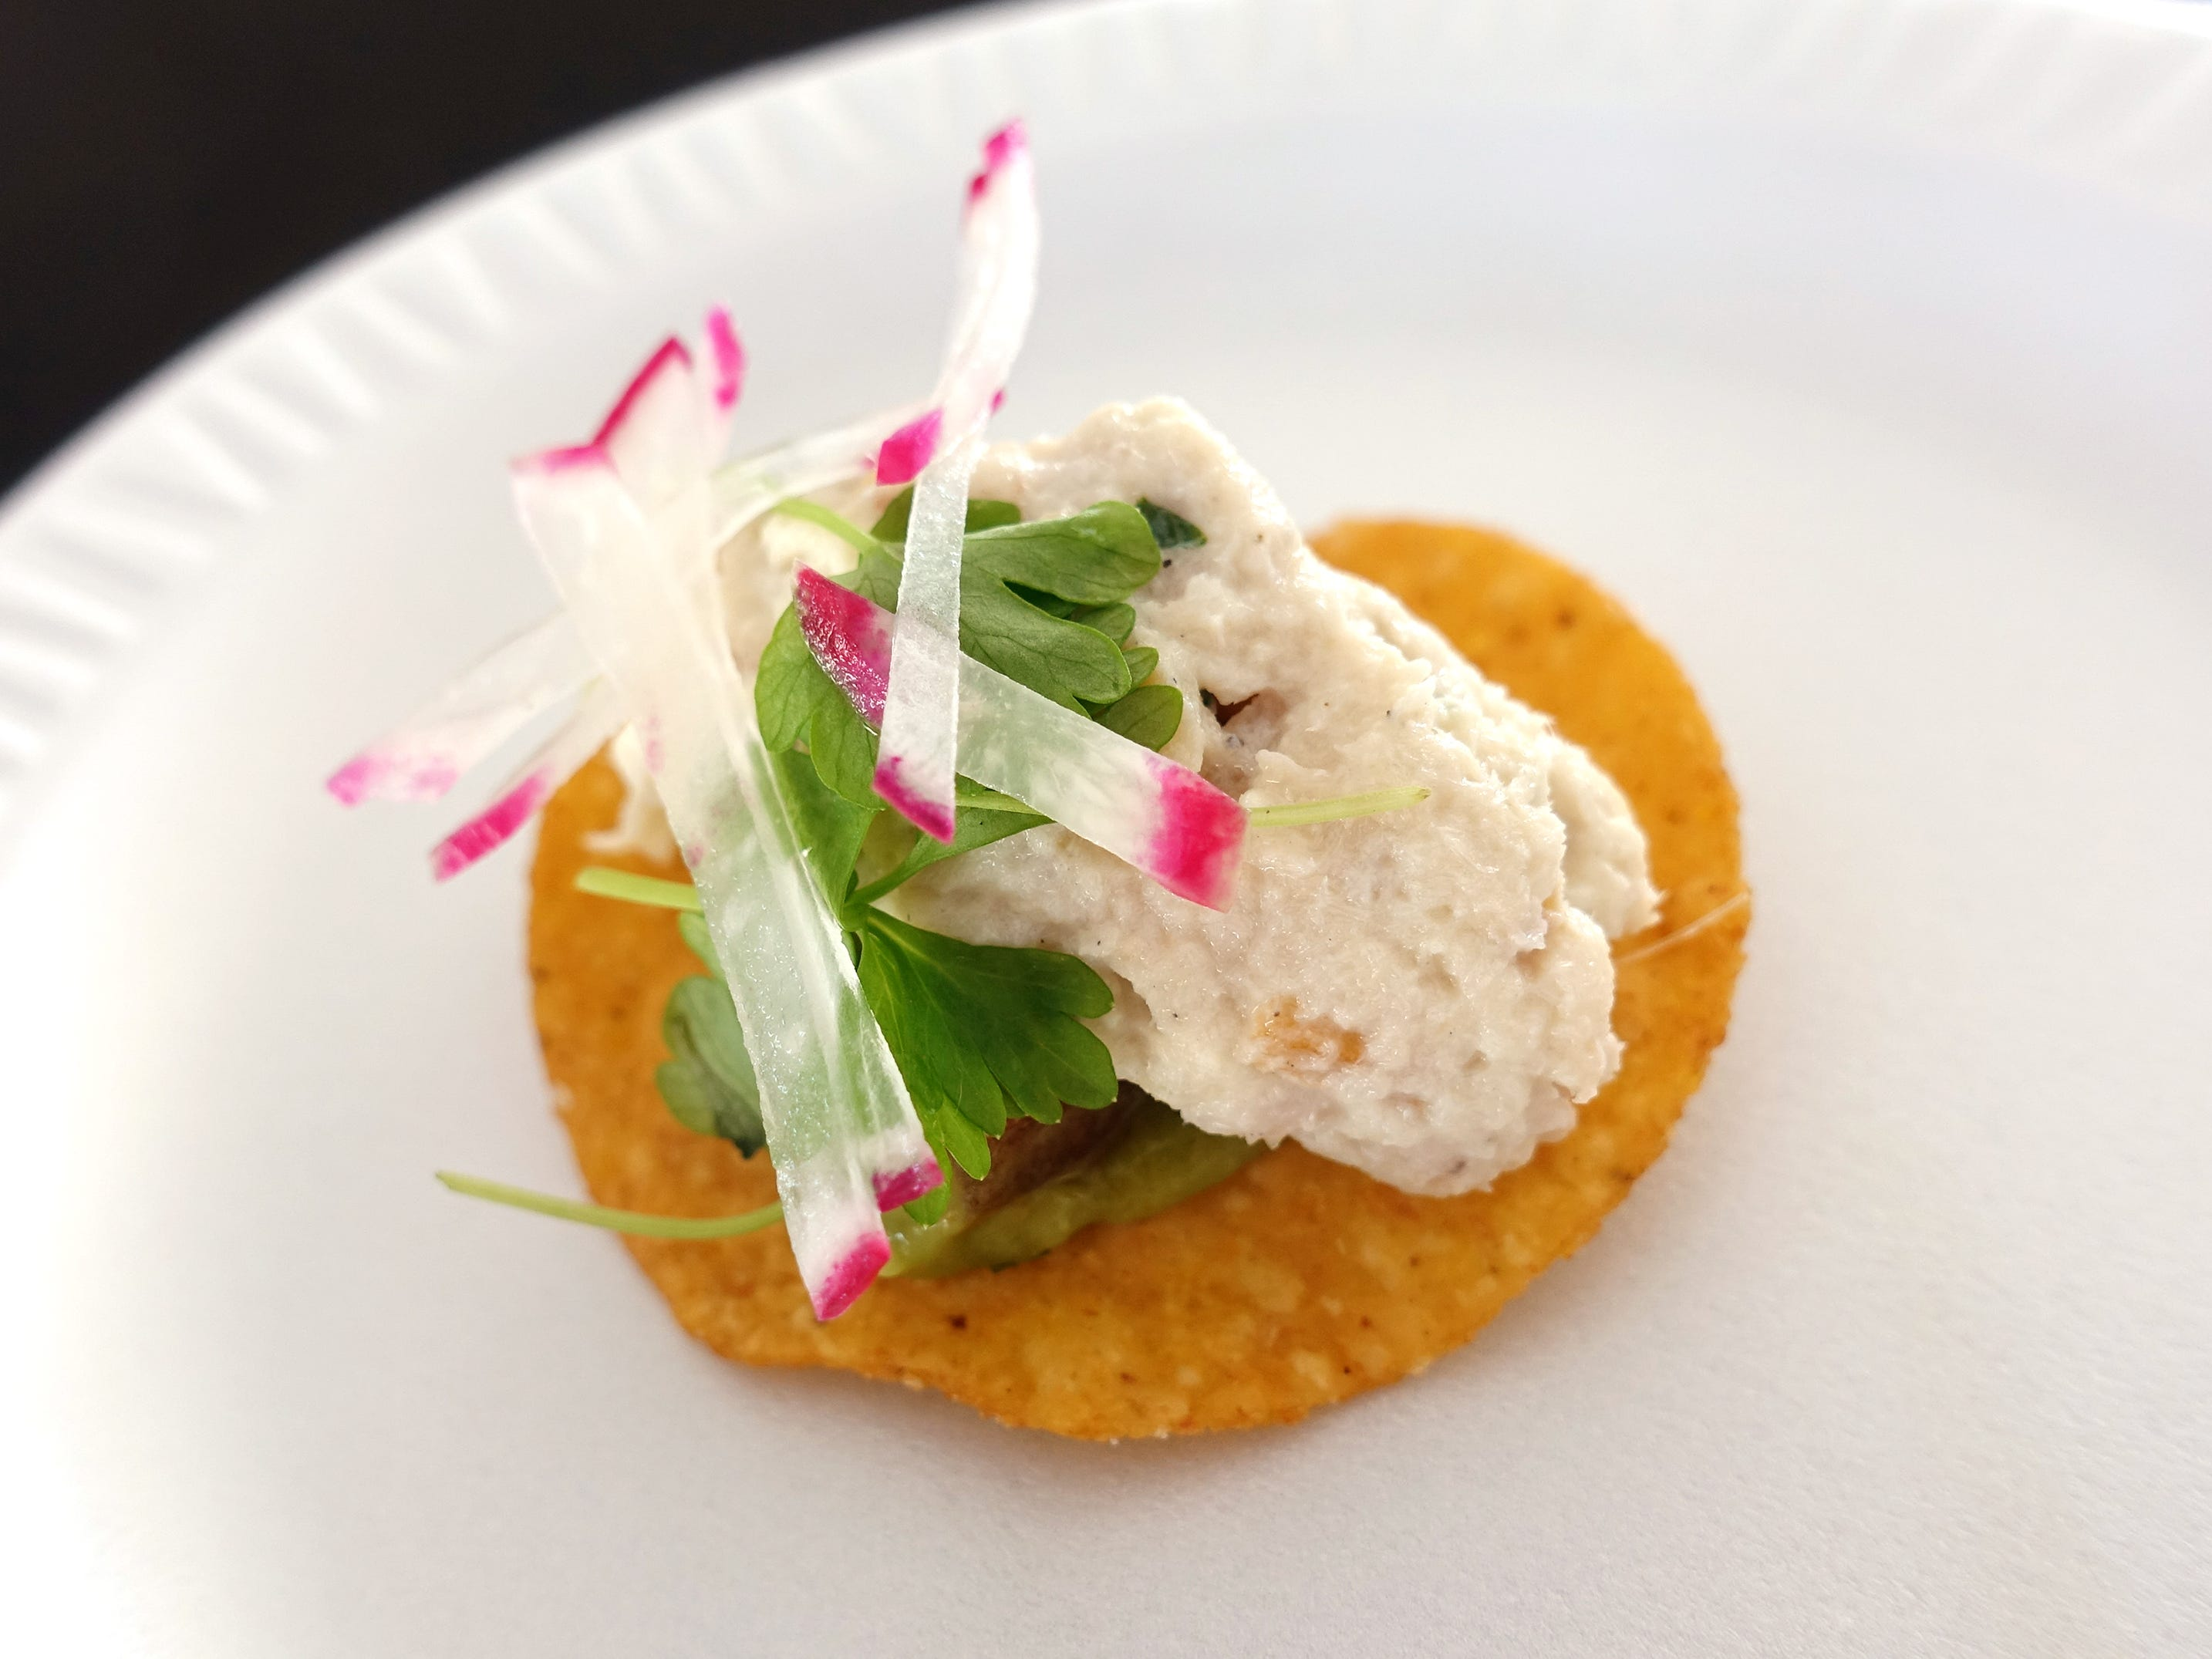 Smoked trout rillettes tostada with avocado from Wright's at The Biltmore at azcentral Wine & Food Experience at WestWorld of Scottsdale Saturday, Nov. 3, 2018.